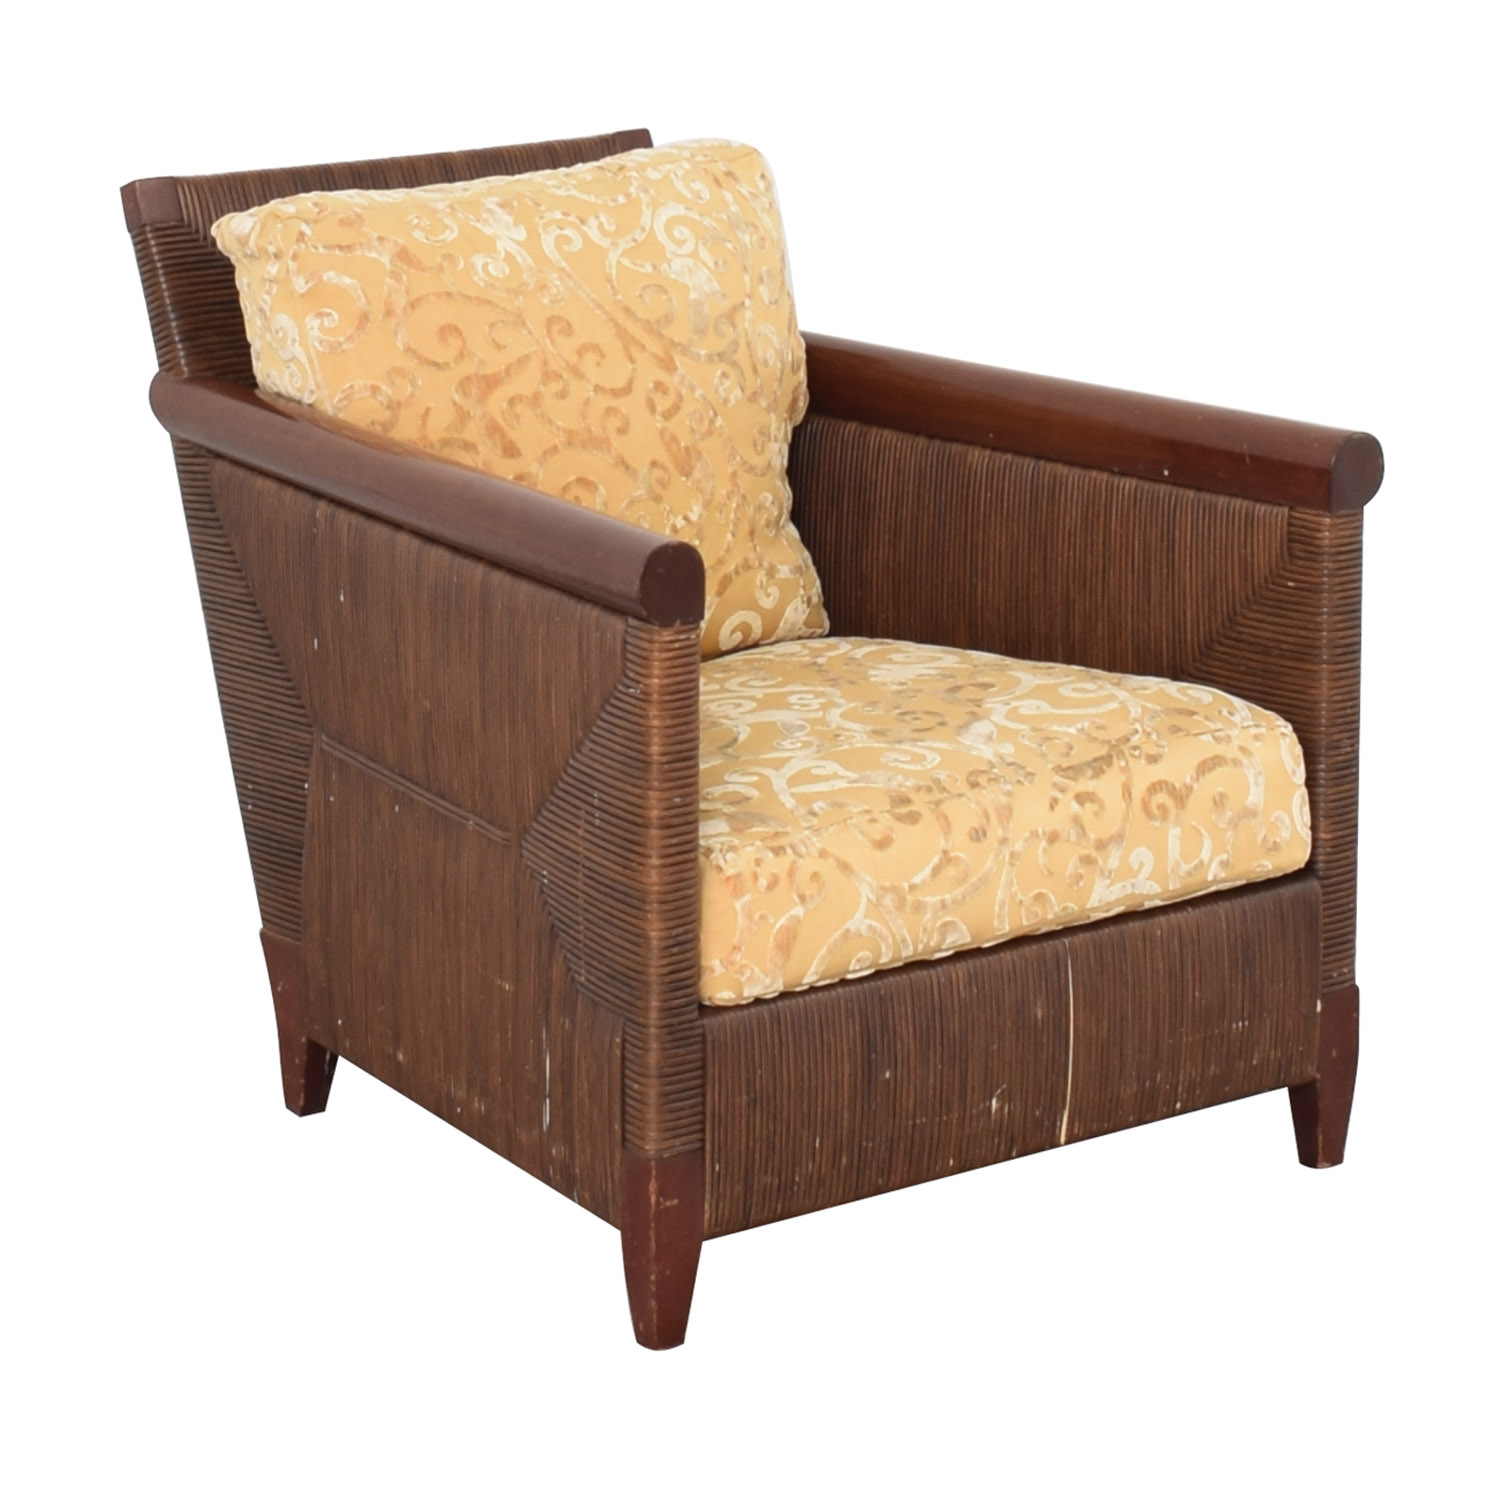 Donghia by John Hutton Mahogany and Wicker Lounger / Chairs